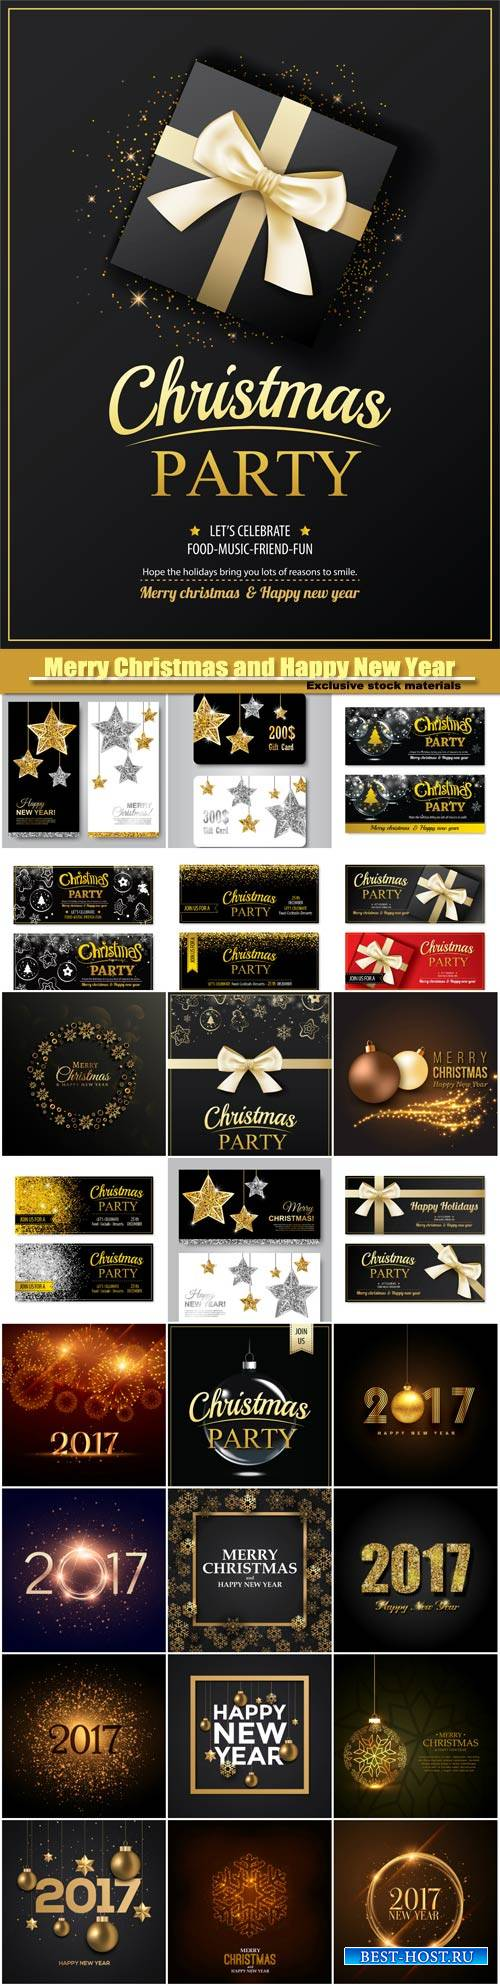 Merry Christmas and Happy New Year vector, invitation party banner, card de ...